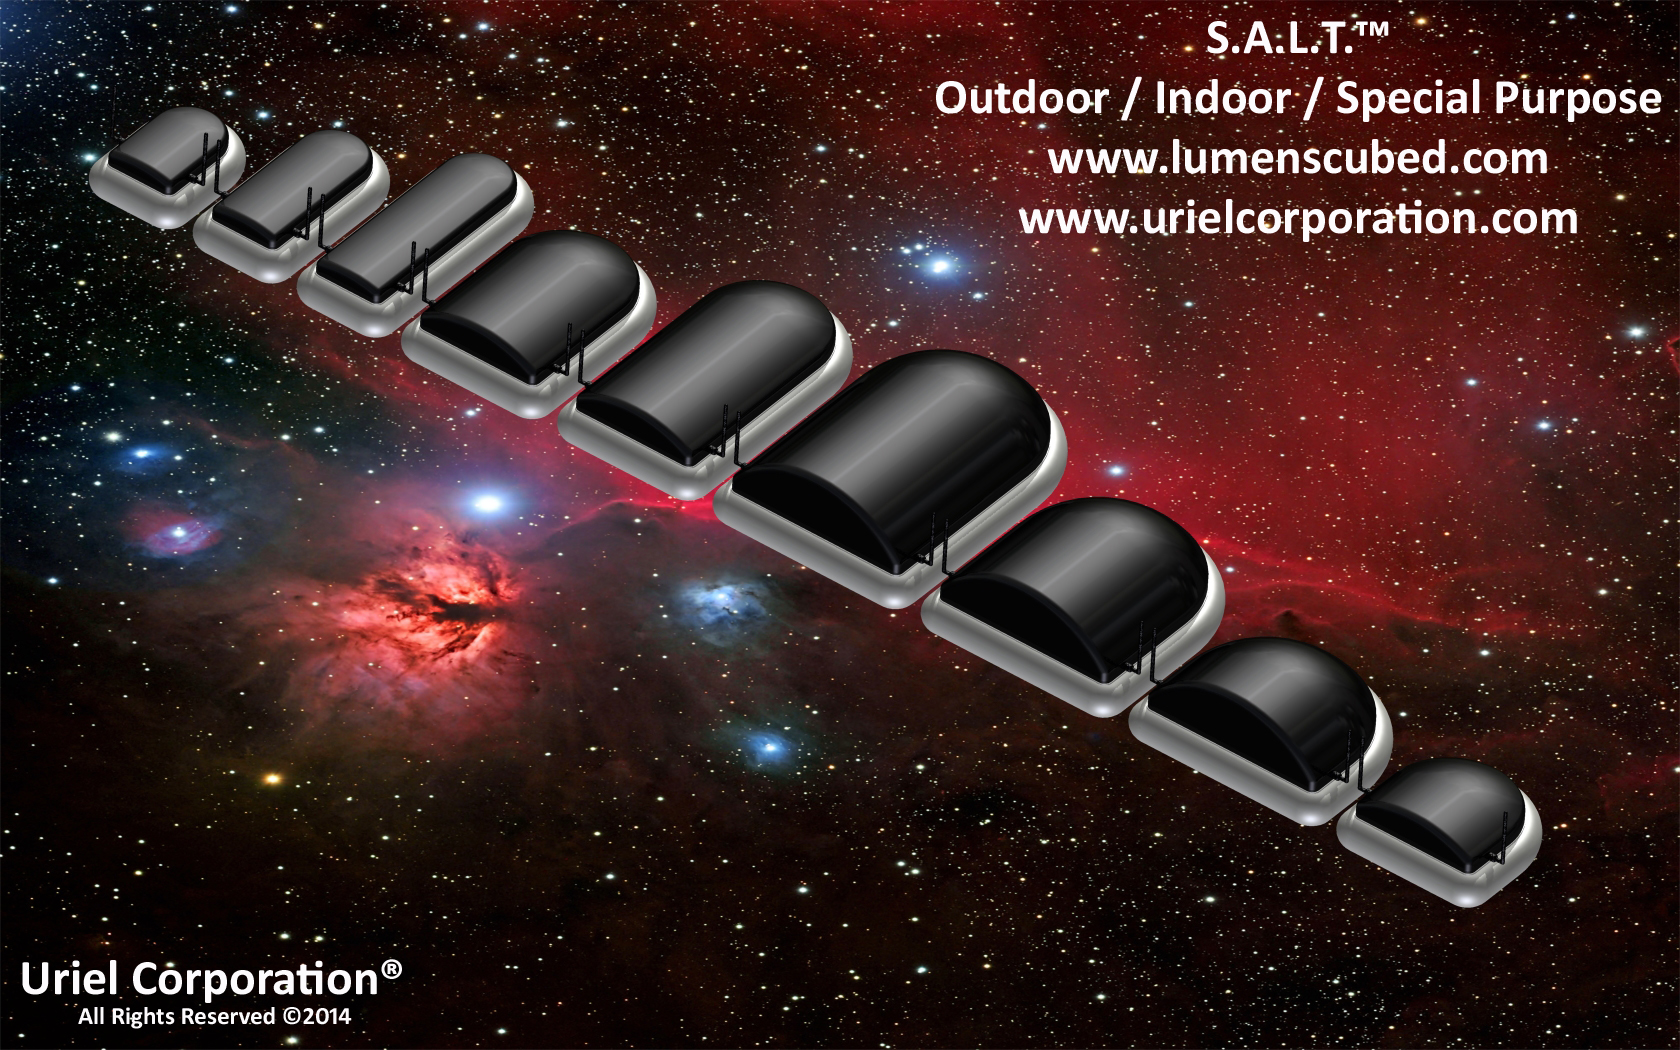 SERVO / STEPPER ASSISTED LIGHTING TECHNOLOGY (S.A.L.T.)™ OUTDOOR-INDOOR-SPECIAL PURPOSE BLACK POWDER COAT LED LIGHTING